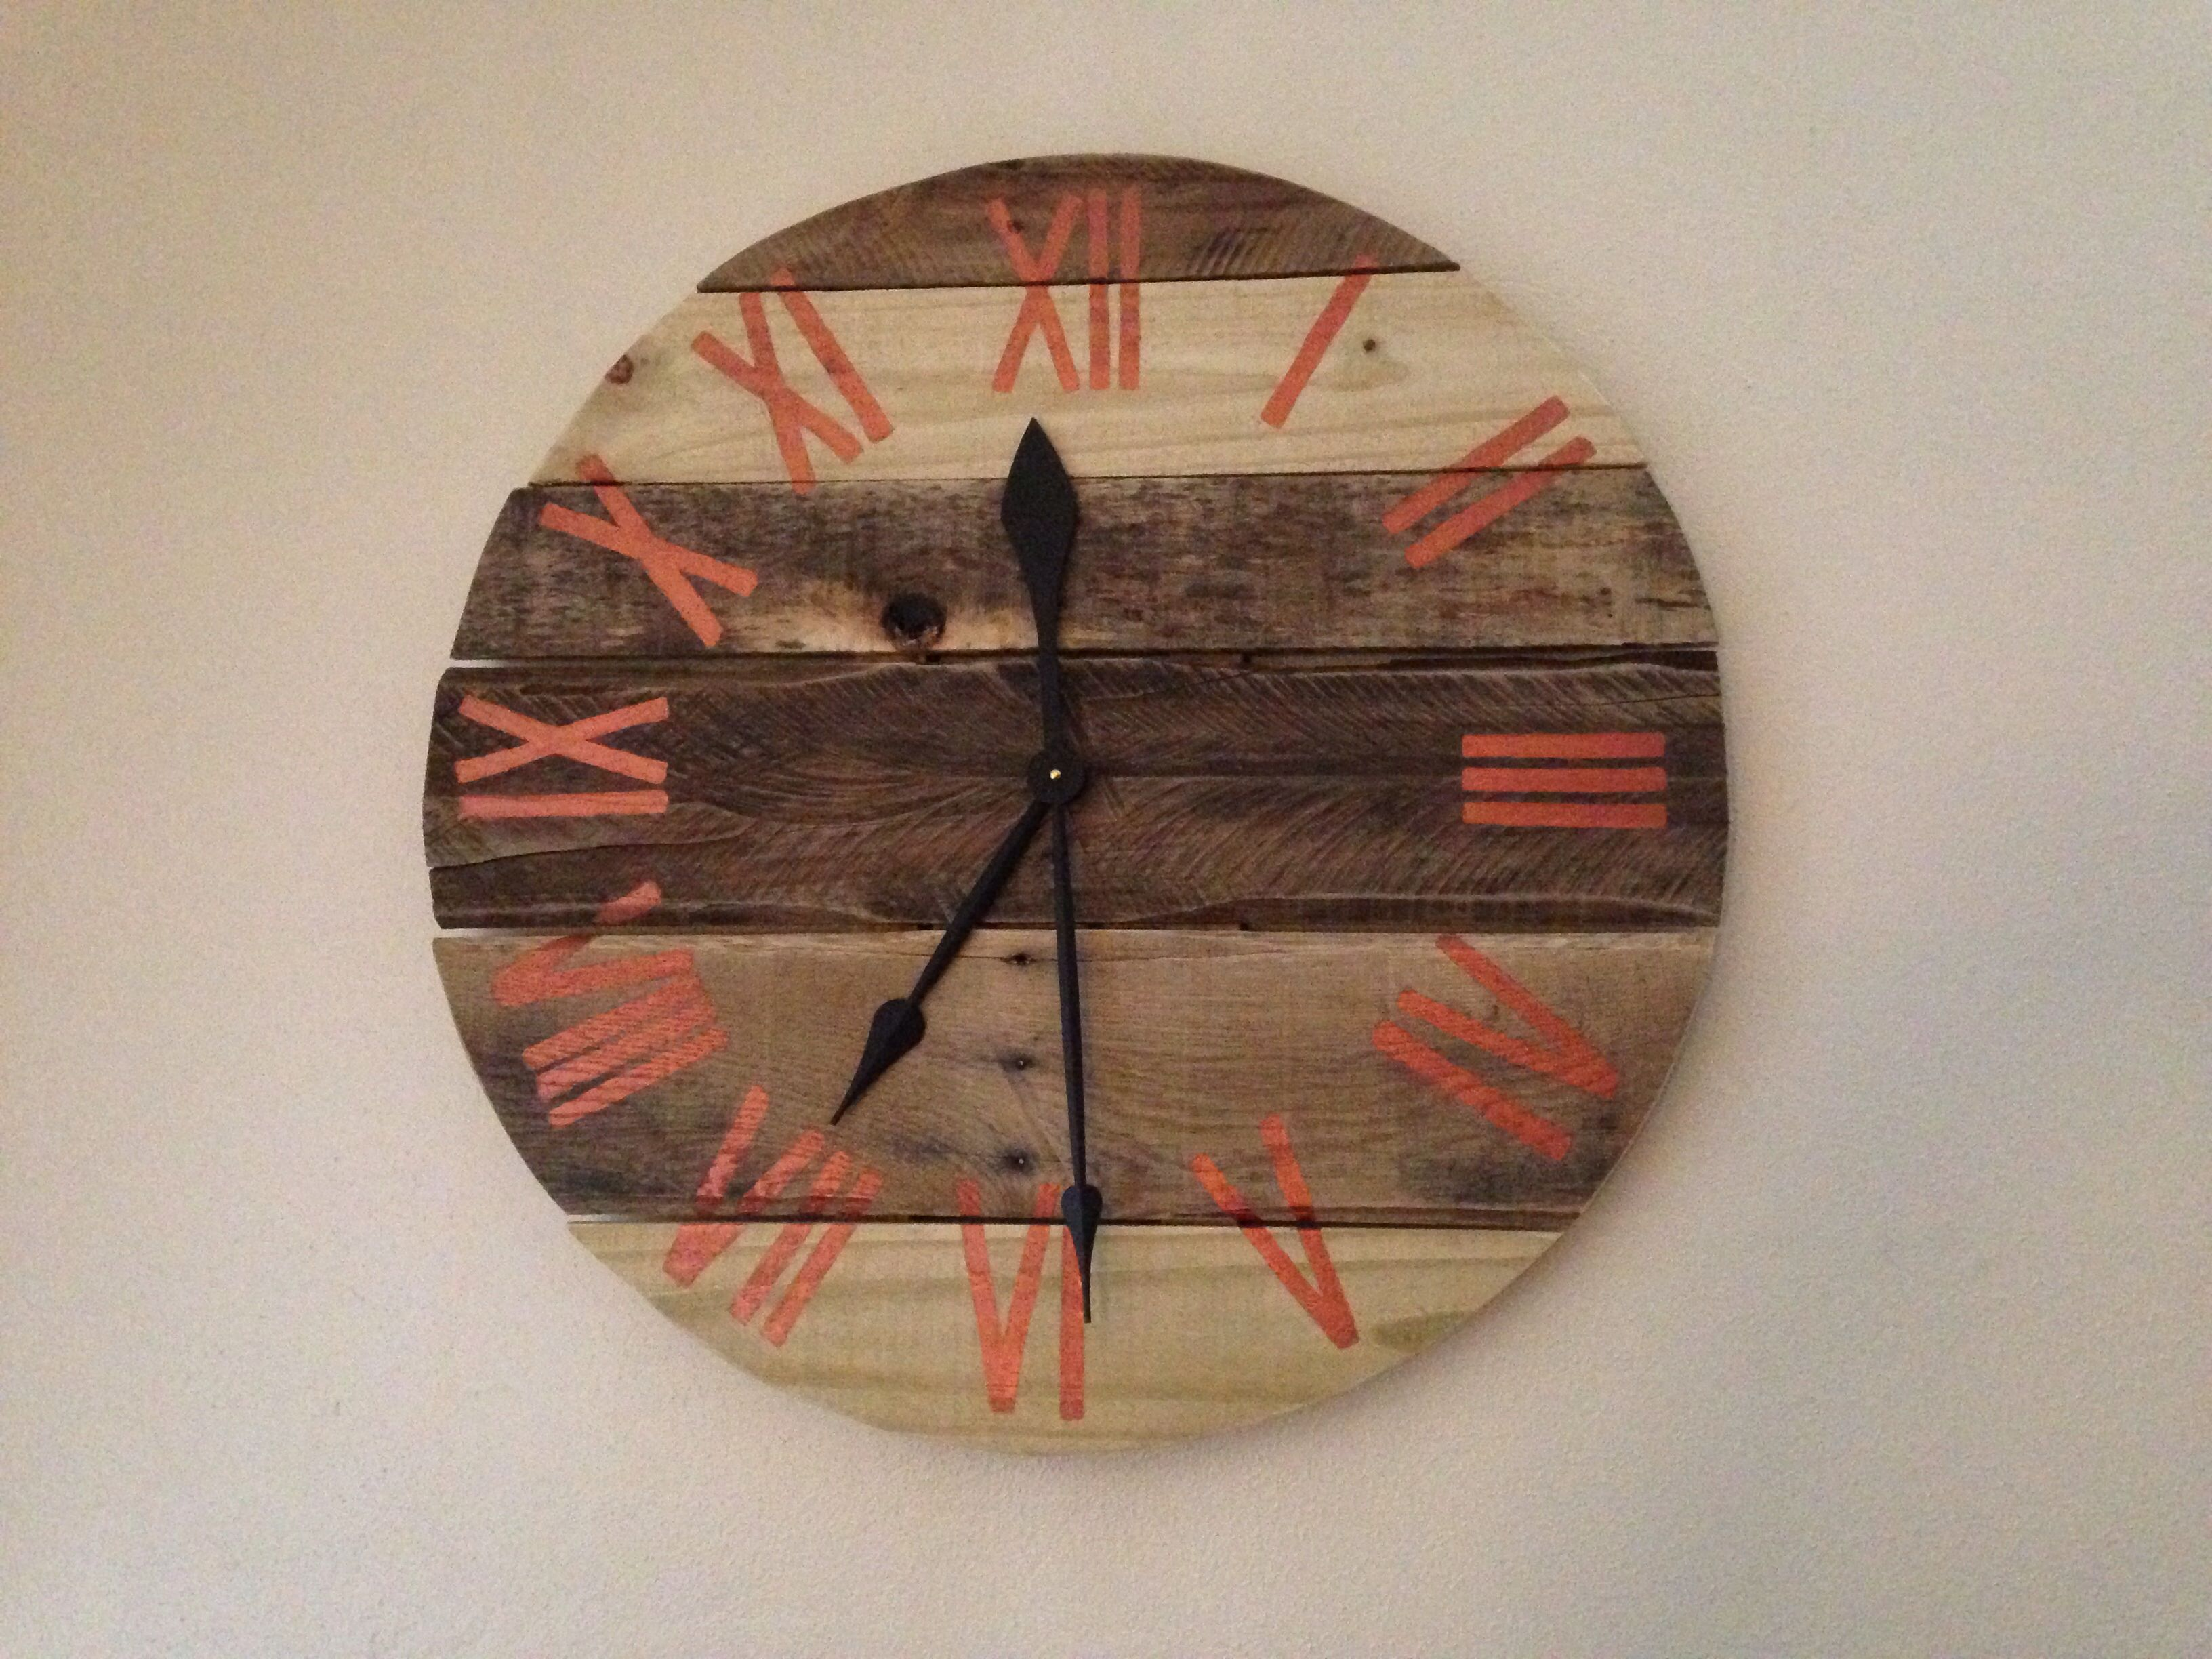 Pallet clock with roman numerals easy diy with leftover wood and a pallet clock with roman numerals easy diy with leftover wood and a clock kit solutioingenieria Choice Image